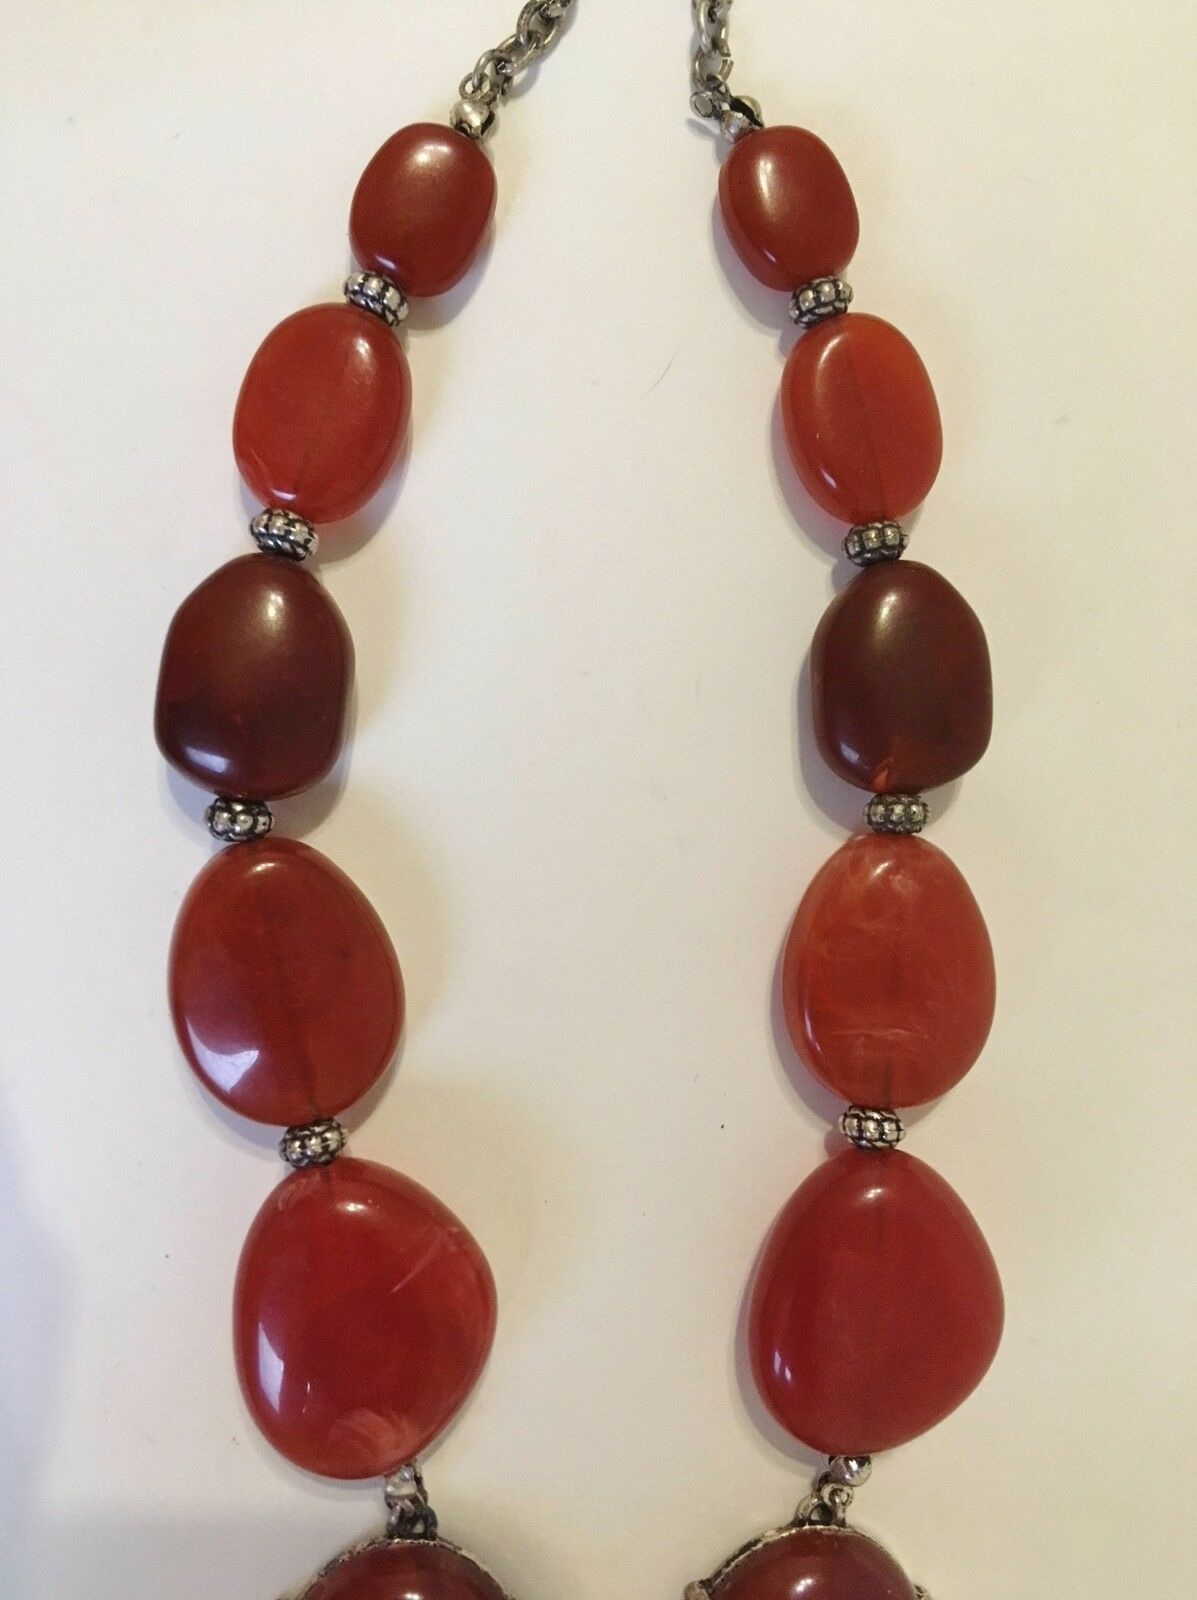 orange shell and rust coral Semi-precious stone necklace and earrings set made of turquoise jasper